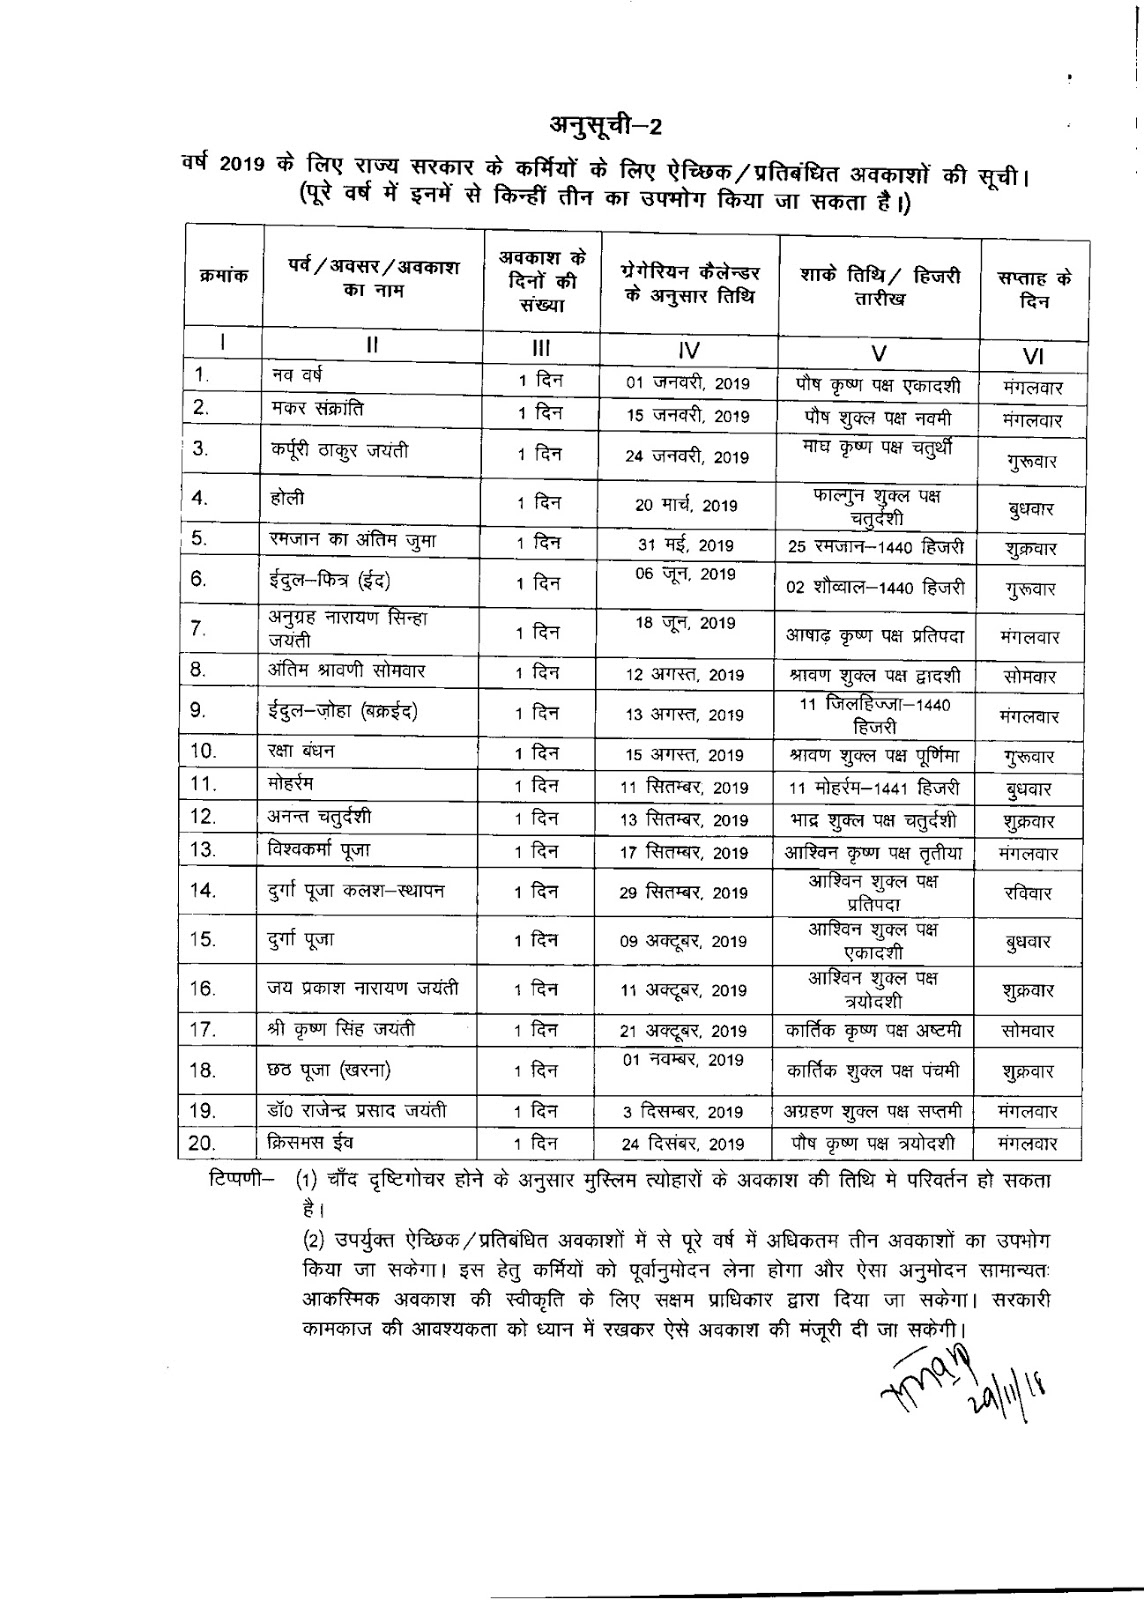 Bihar Government Calendar 2019 #educratsweb with regard to Bihar Sarkar Calender 2020